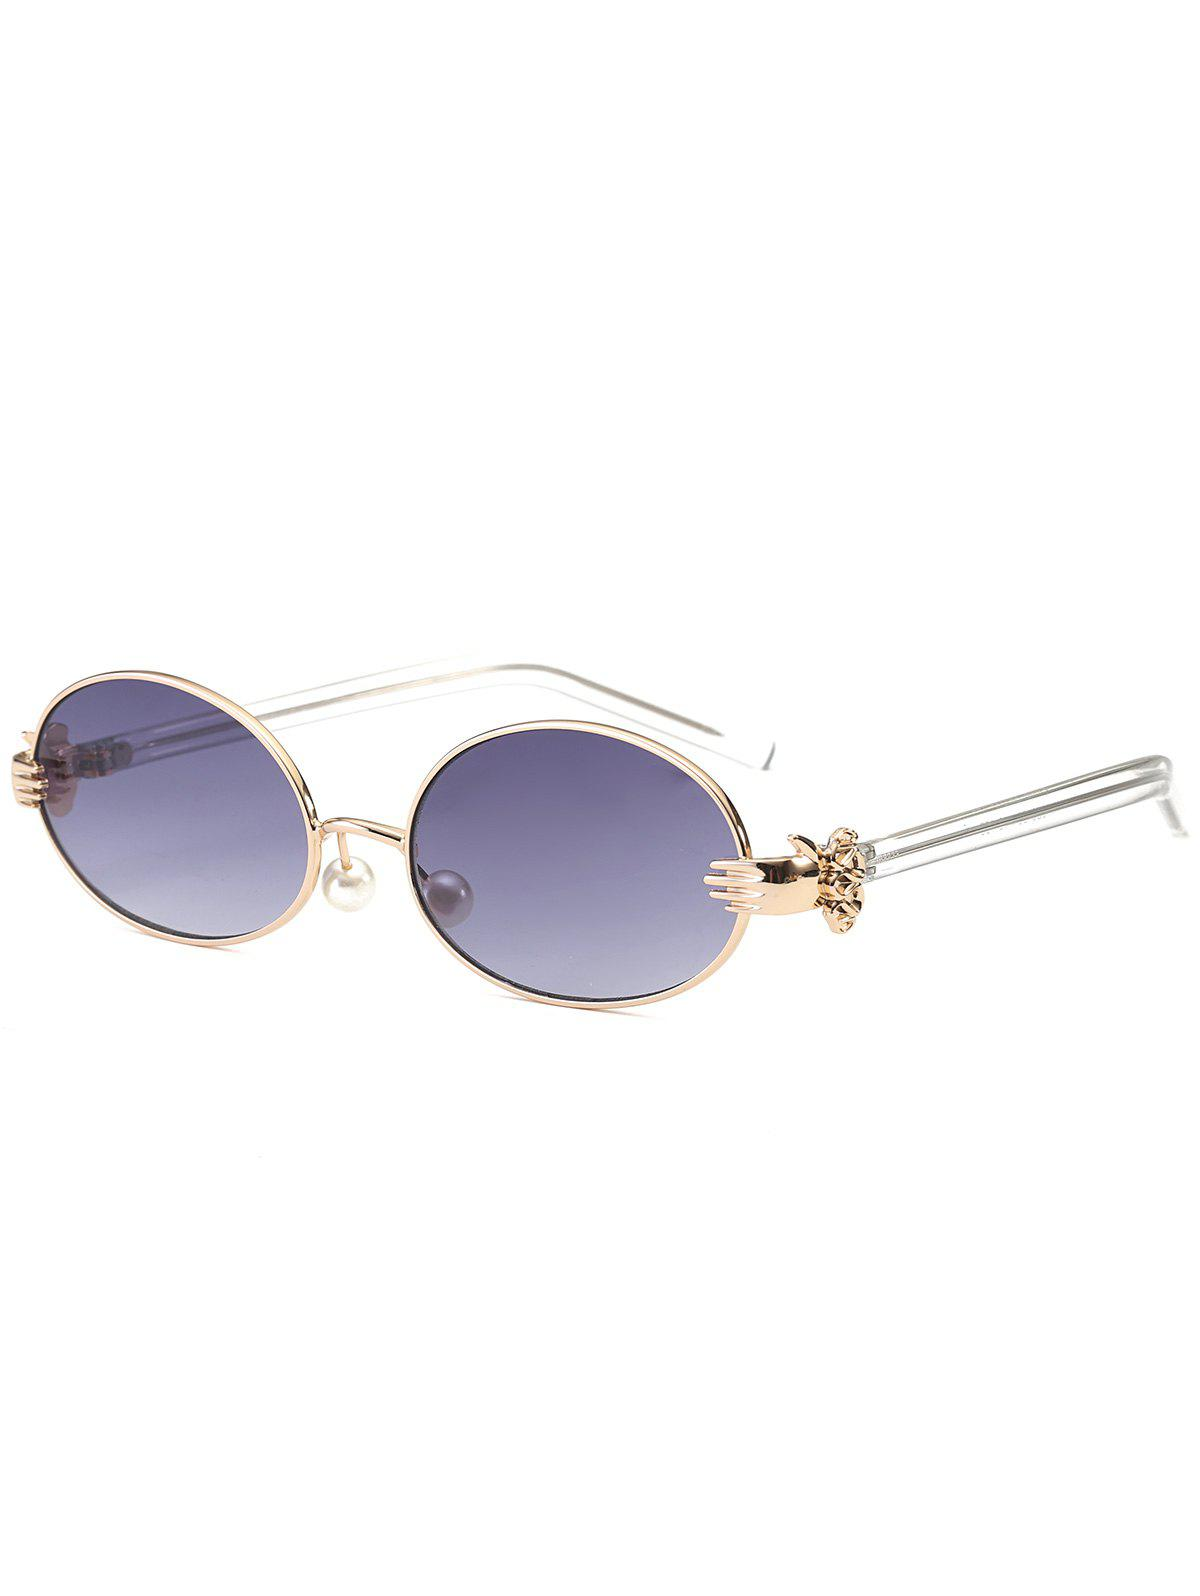 Faux Pearl Nose Pad Metallic Hand Oval Sunglasses travel double nose bridges oval mirrored sunglasses